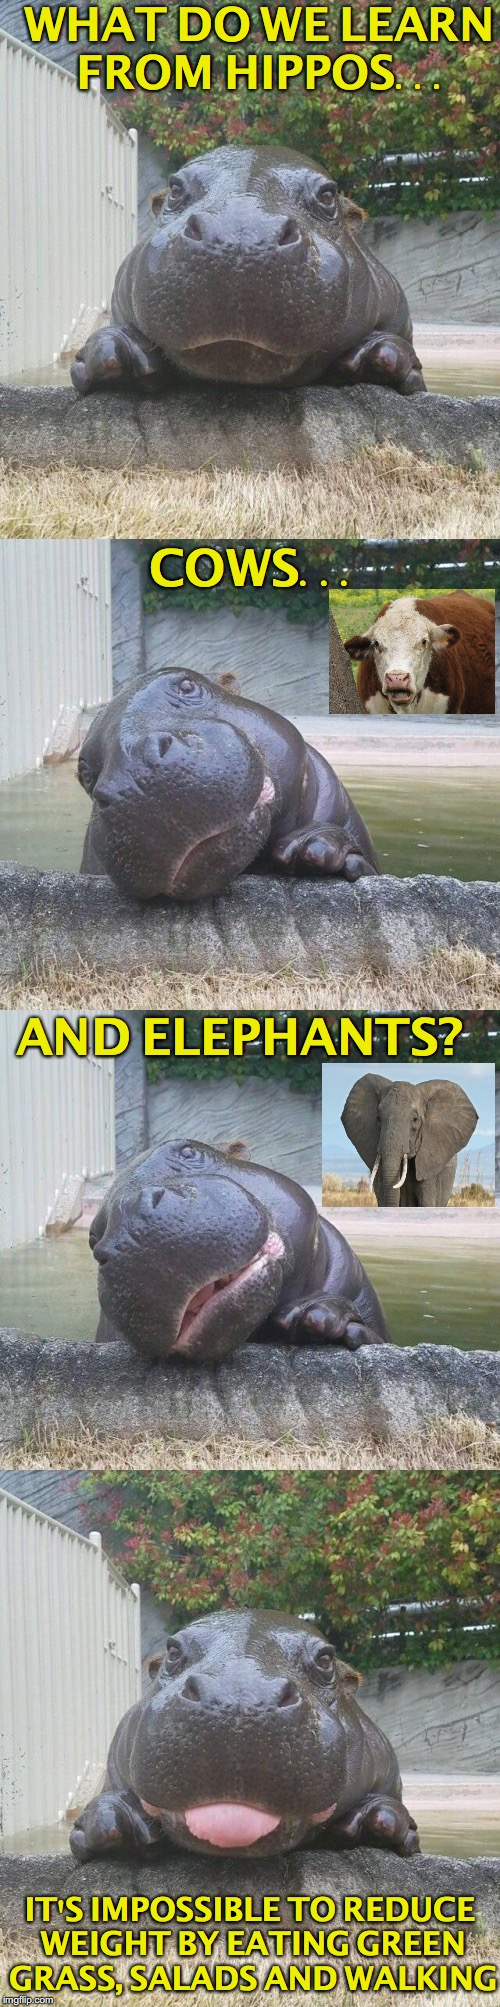 WHAT DO WE LEARN FROM HIPPOS... COWS... AND ELEPHANTS? IT'S IMPOSSIBLE TO REDUCE WEIGHT BY EATING GREEN GRASS, SALADS AND WALKING | image tagged in hippopotamus,vegetarian,vegan,weight loss | made w/ Imgflip meme maker